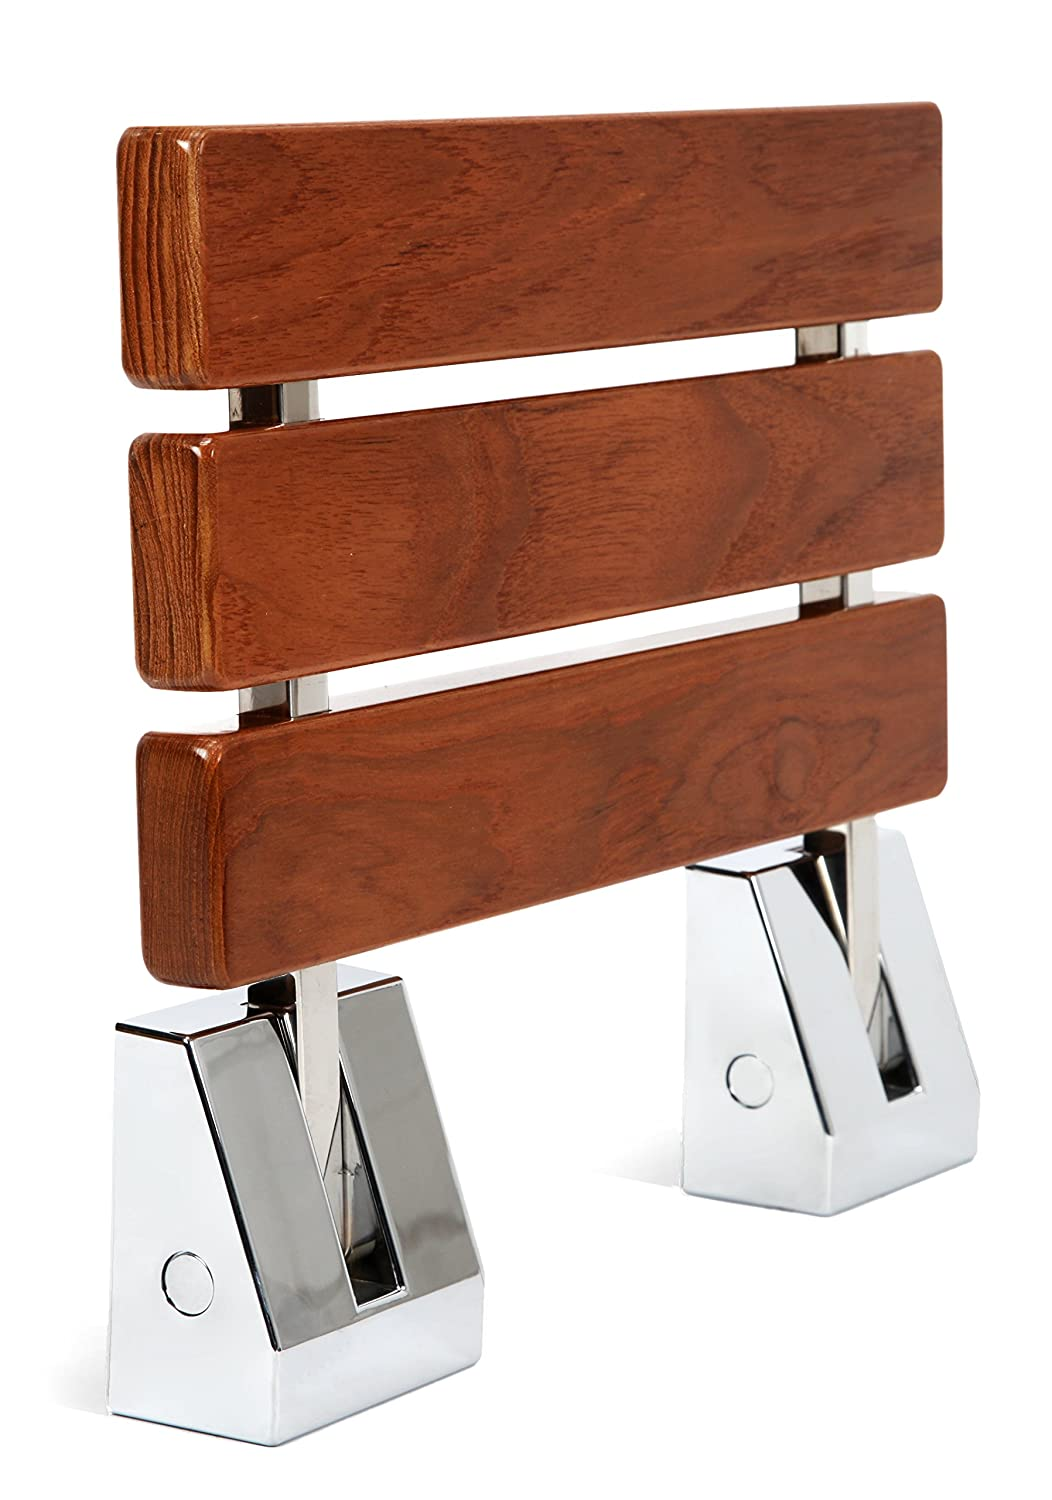 Amazon.com: Kenley Folding Shower Seat Wooden Wall Mounted Bench ...